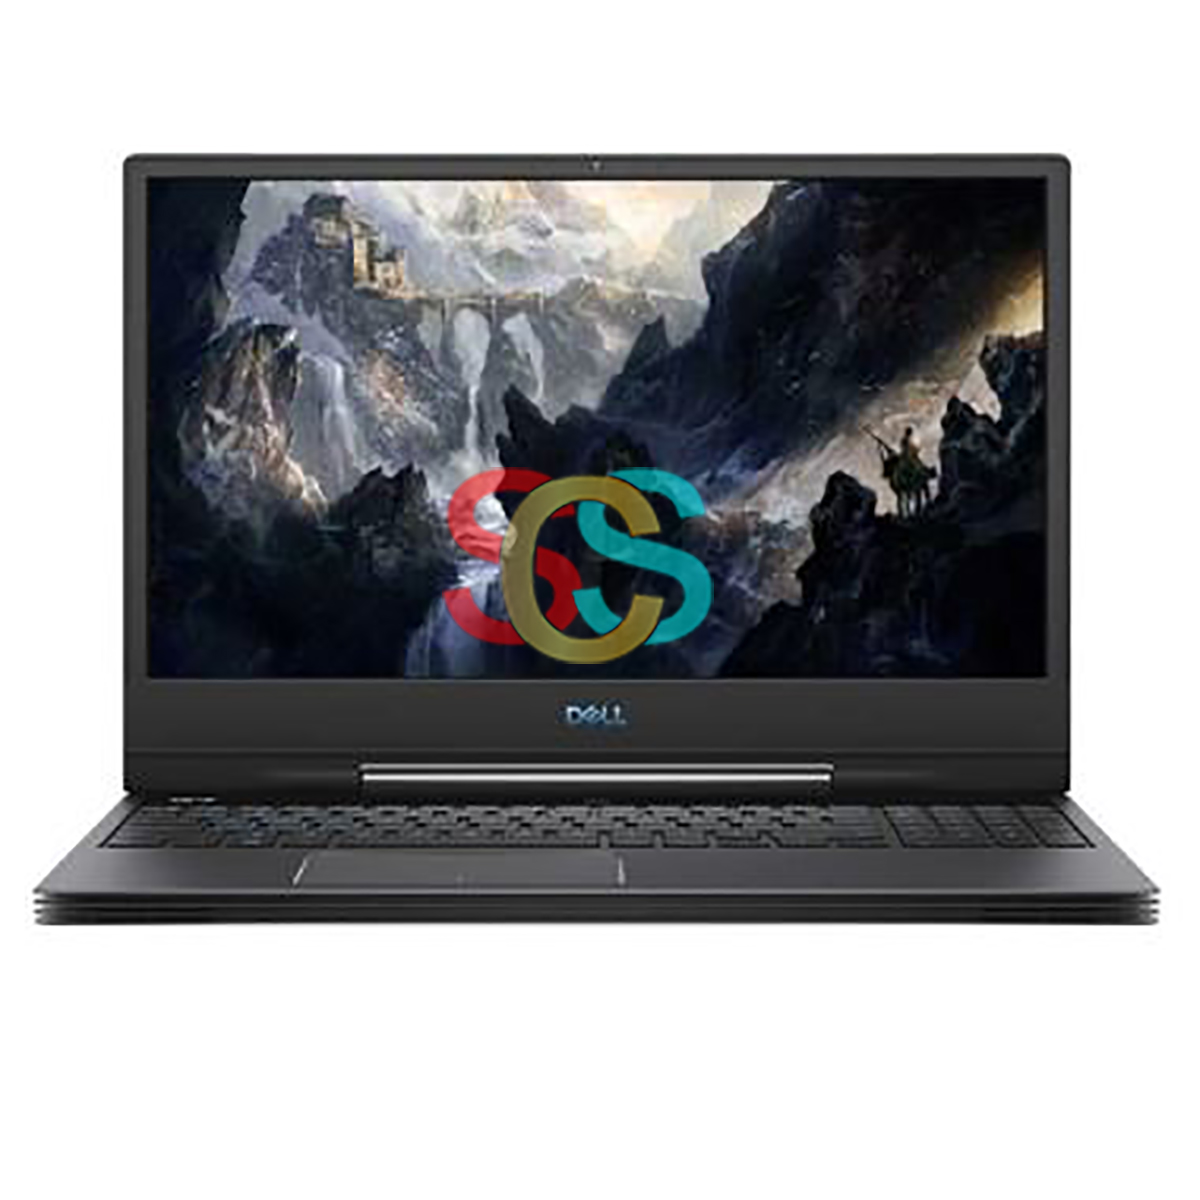 Dell G7 15-7590 9th Gen Intel Core i7 9750H Abyss Grey Gaming Notebook